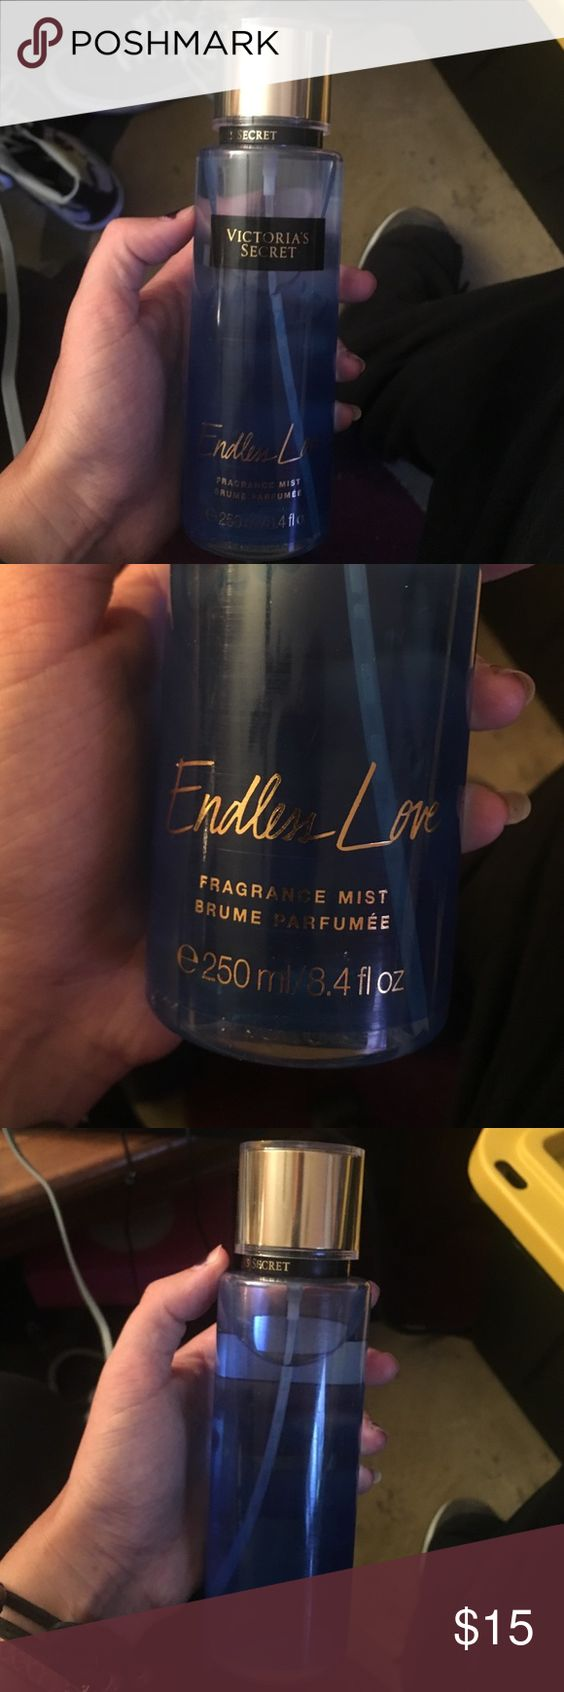 Victoria's Secret New 8.4 oz Endless Love mist This is a new never used Victoria's Secret classic fragrance must in Endless Love. Victoria's Secret Other